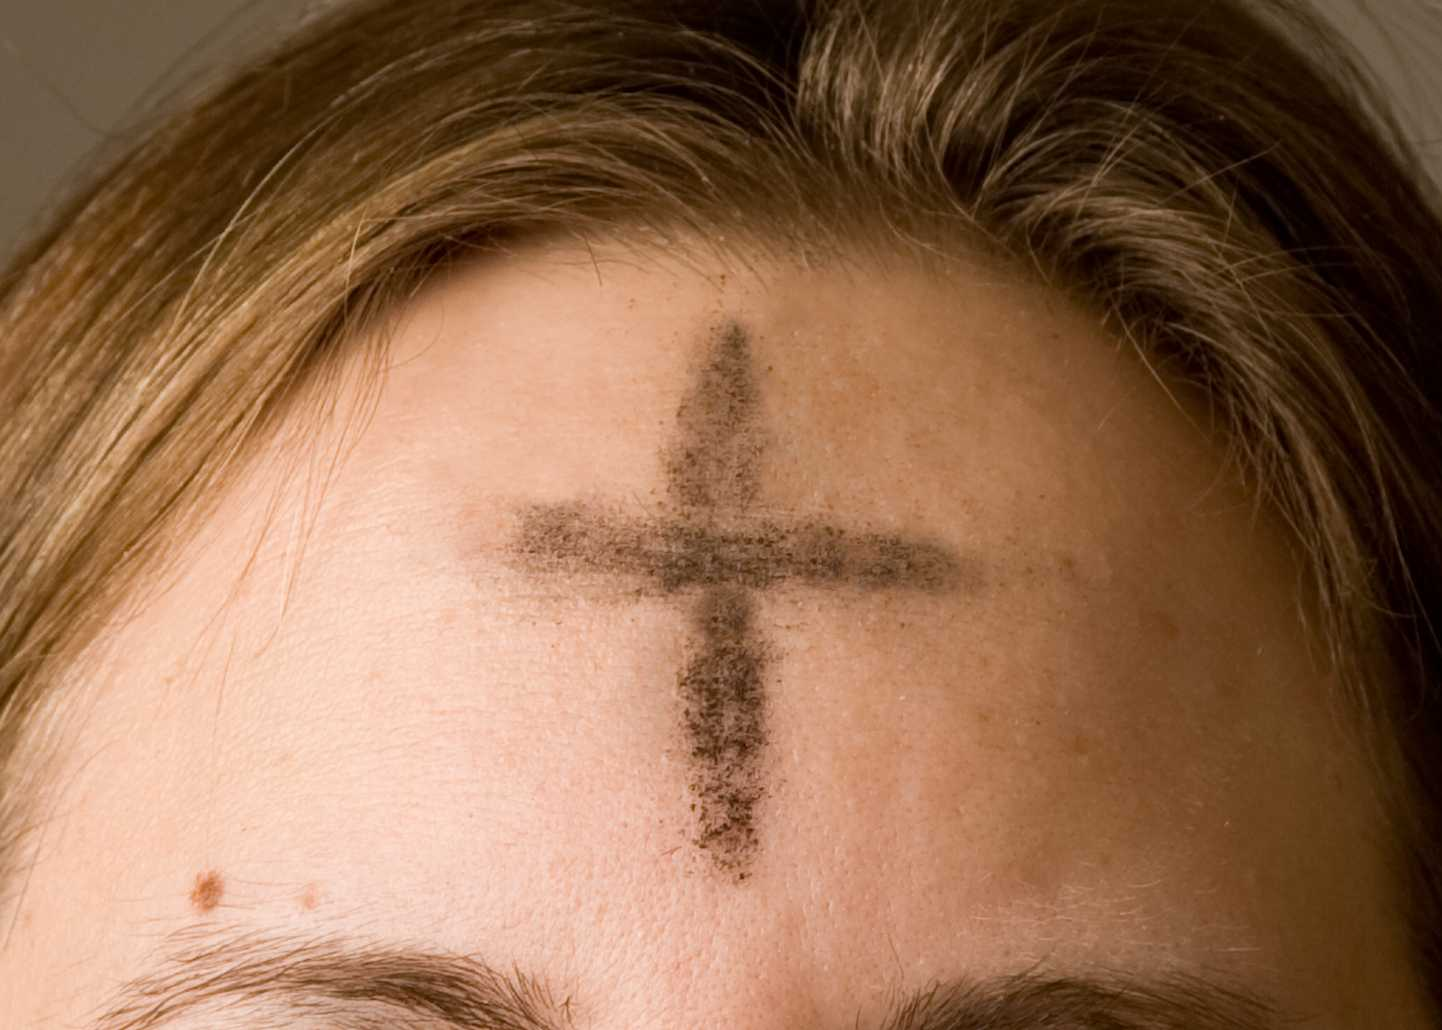 On Ash Wednesday every year, priests invite everyone to receive ashes in the shape of a cross on their forehead for the first day of Lent.